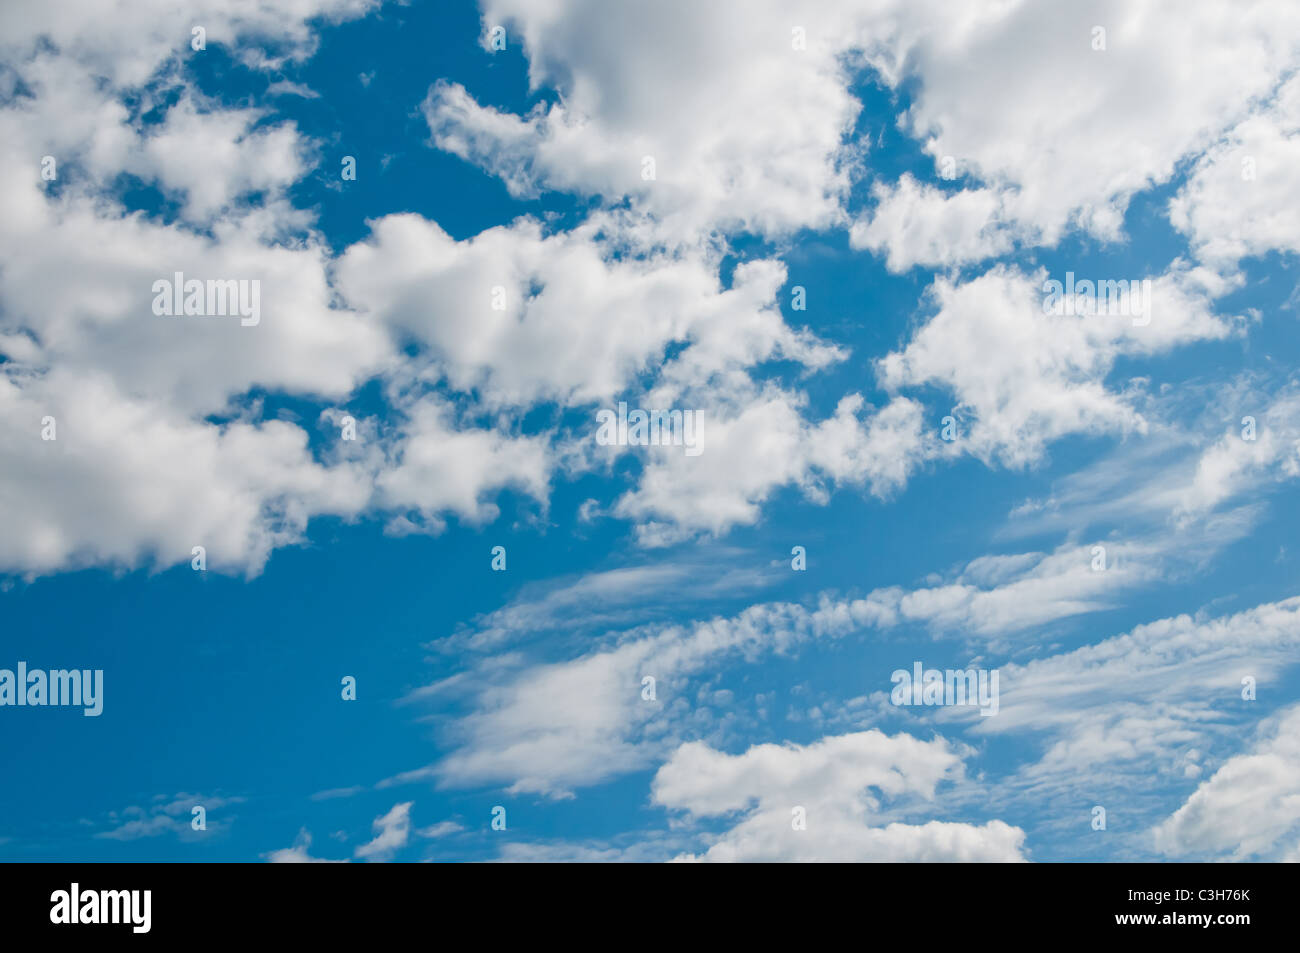 Background abstract: blue sky and clouds - Stock Image